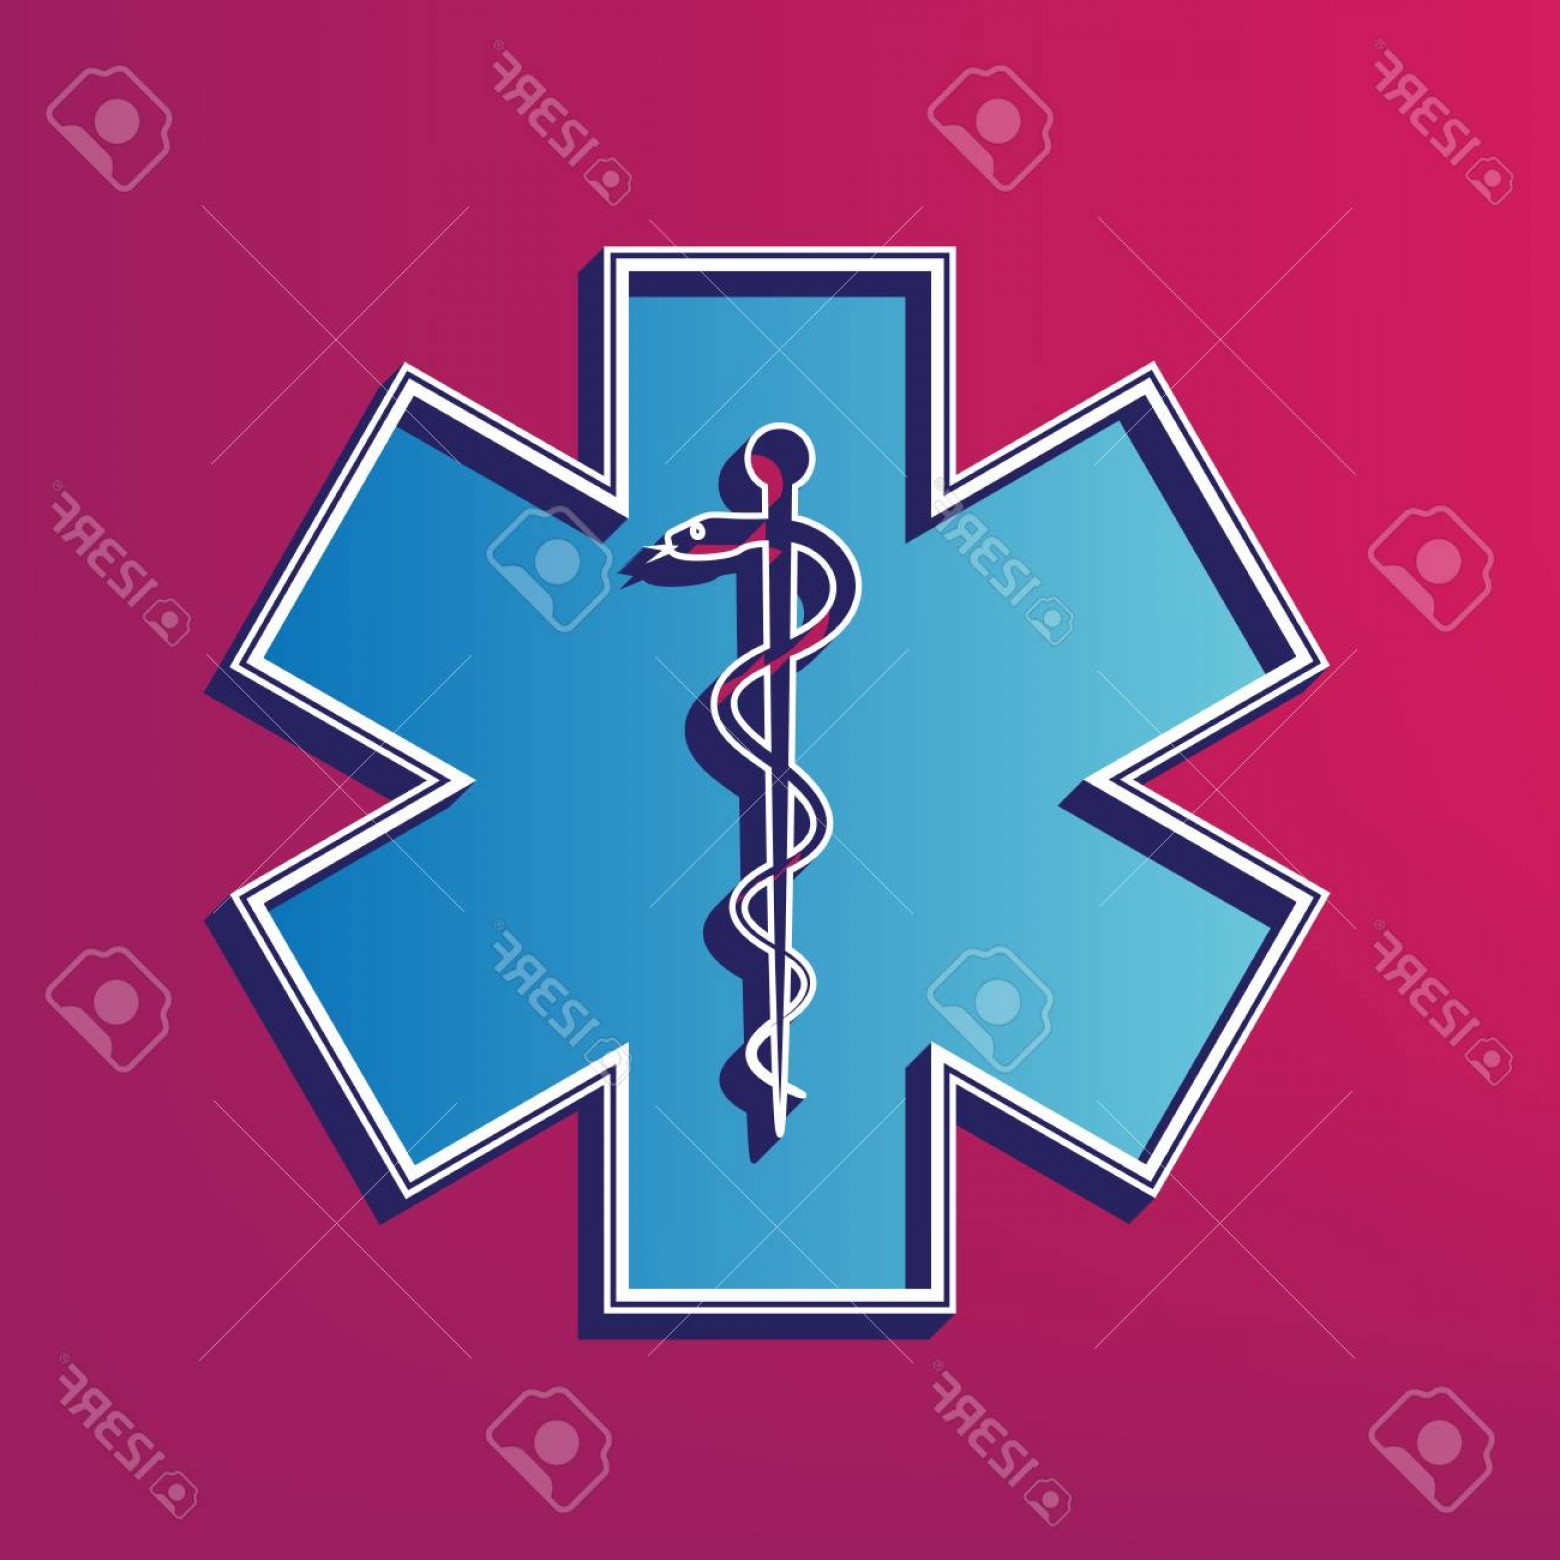 1560x1560 Ems Star Of Life Vector Lazttweet